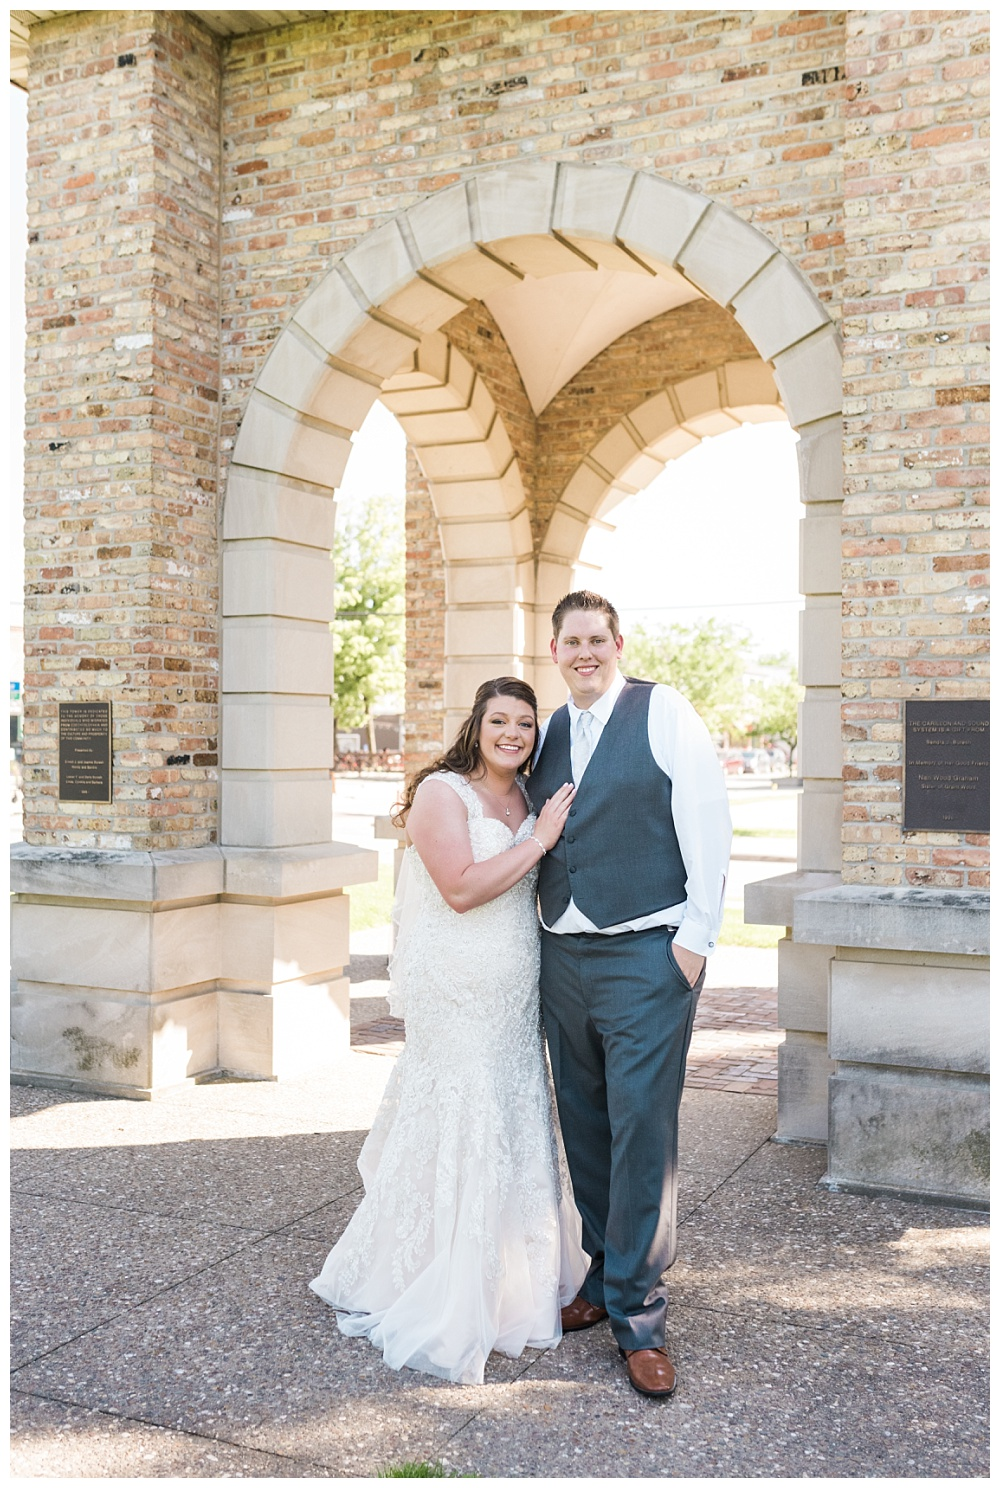 Stephanie Marie Photography Eastbank Venue and Lounge Cedar Rapids Iowa City Wedding Photographer Kelsey Austin Boekhoff_0003.jpg